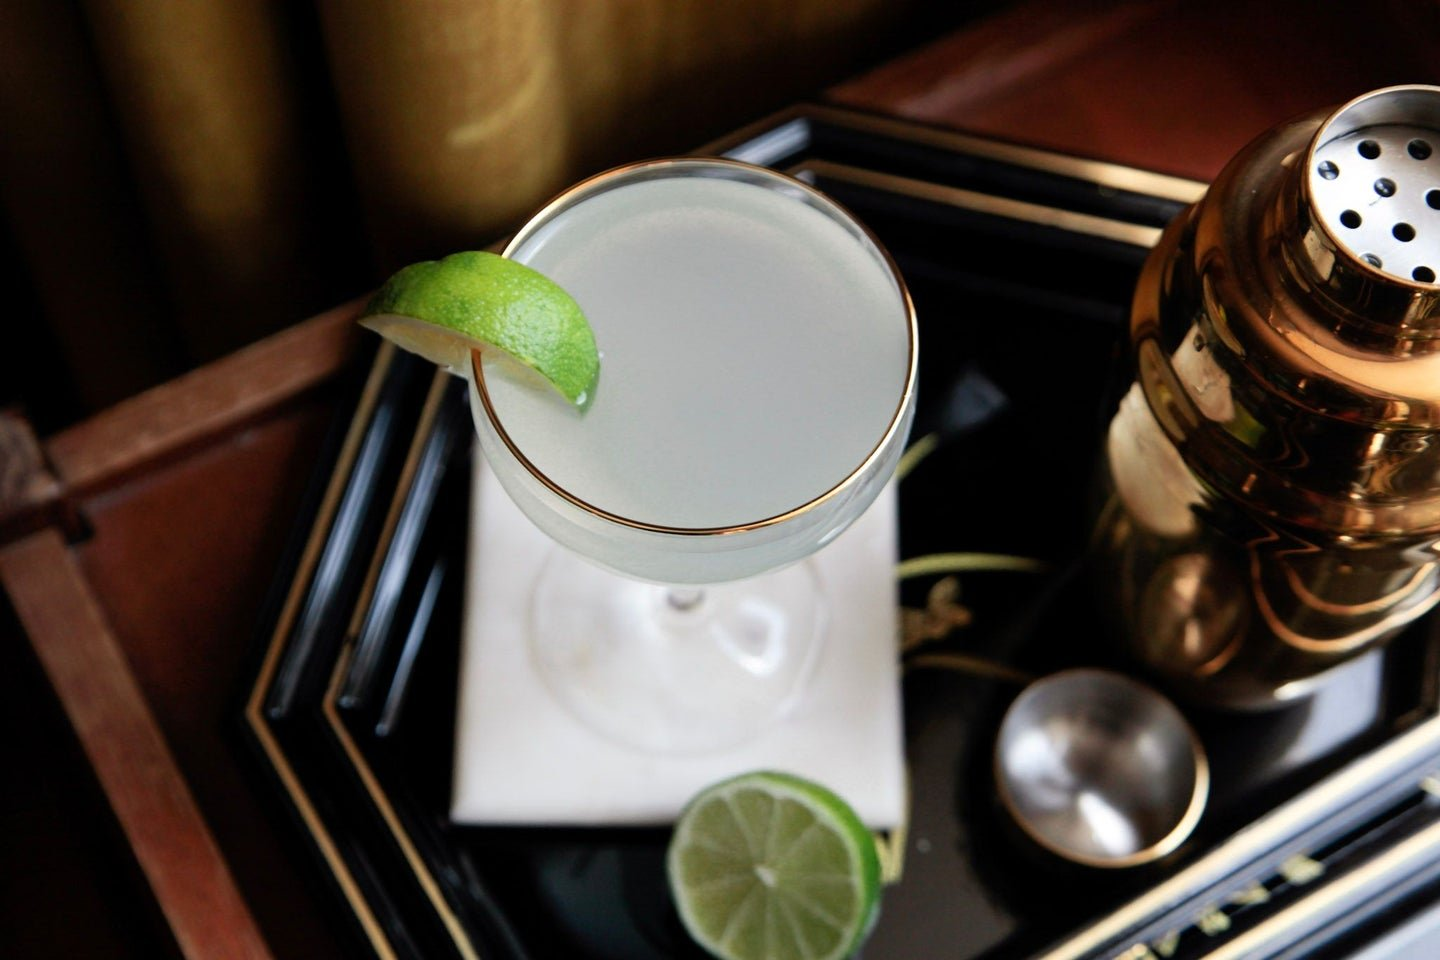 Dissecting the classic gin gimlet - cover